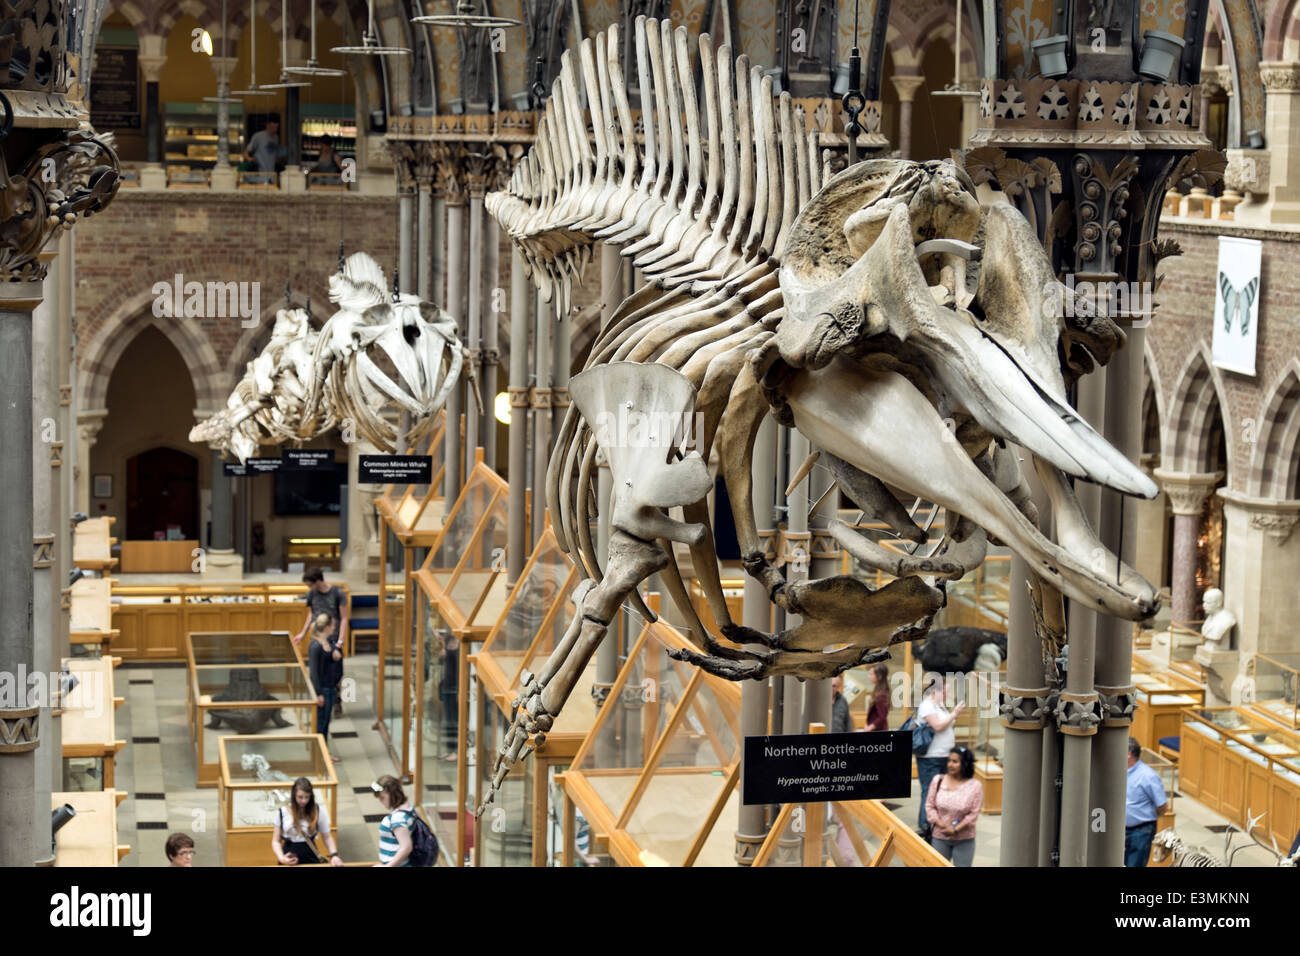 Whale Skeletons exhibited in a row hanging  inside the natural history museum in Oxford, Oxfordshire, UK - Stock Image